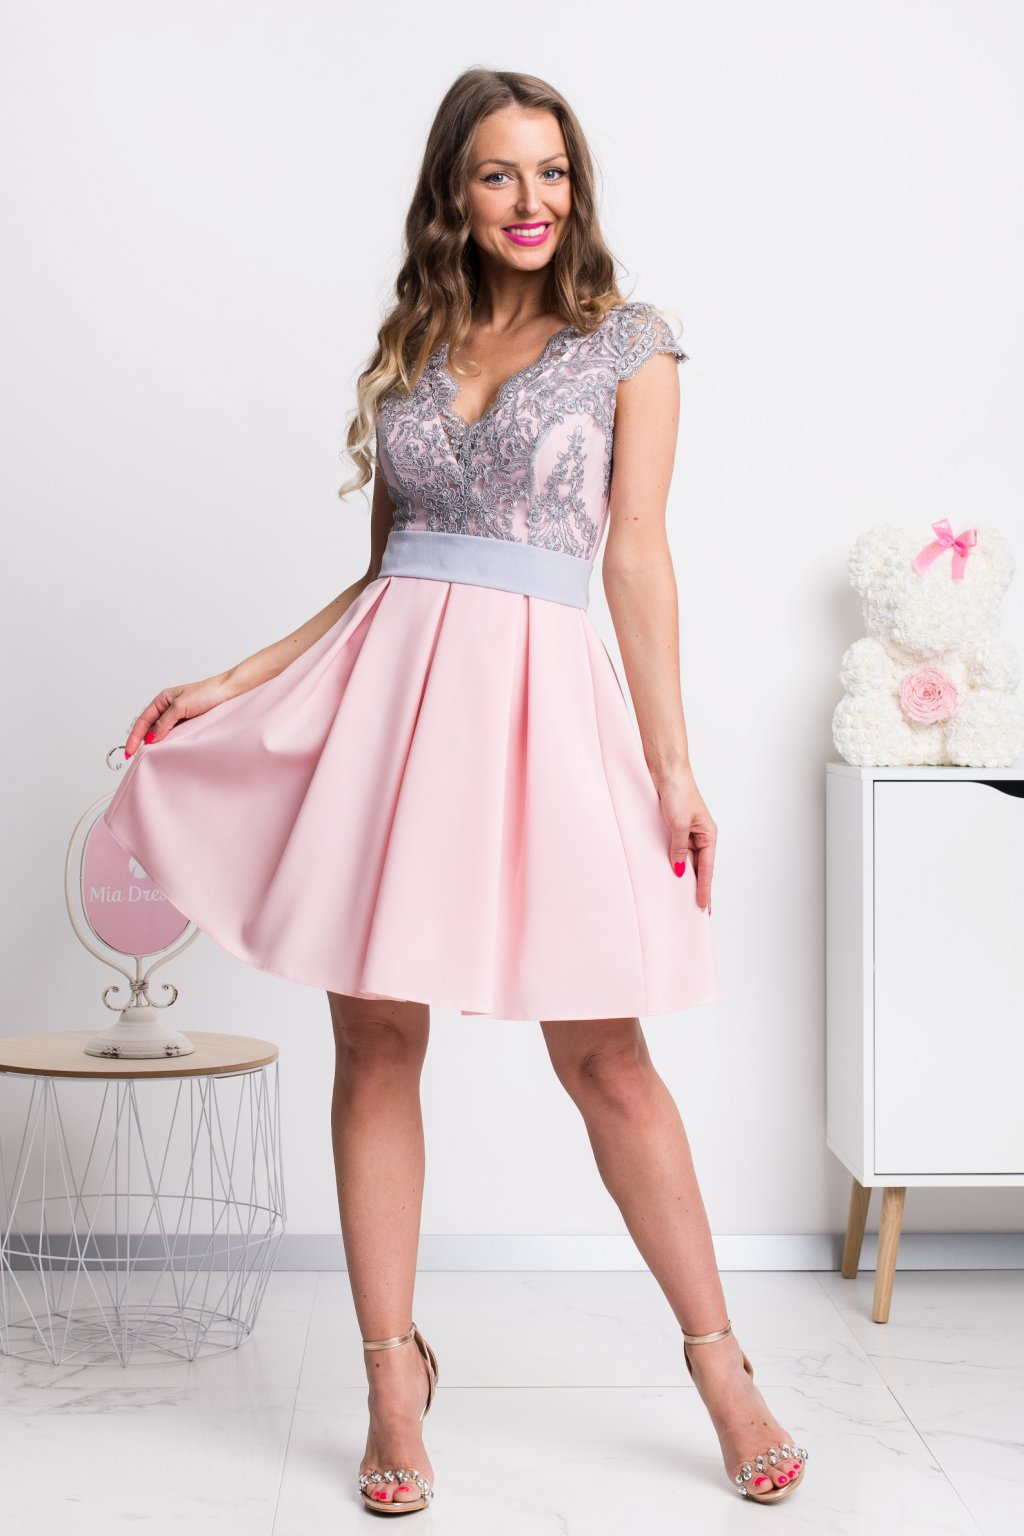 Pink-gray a-line formal mini dress